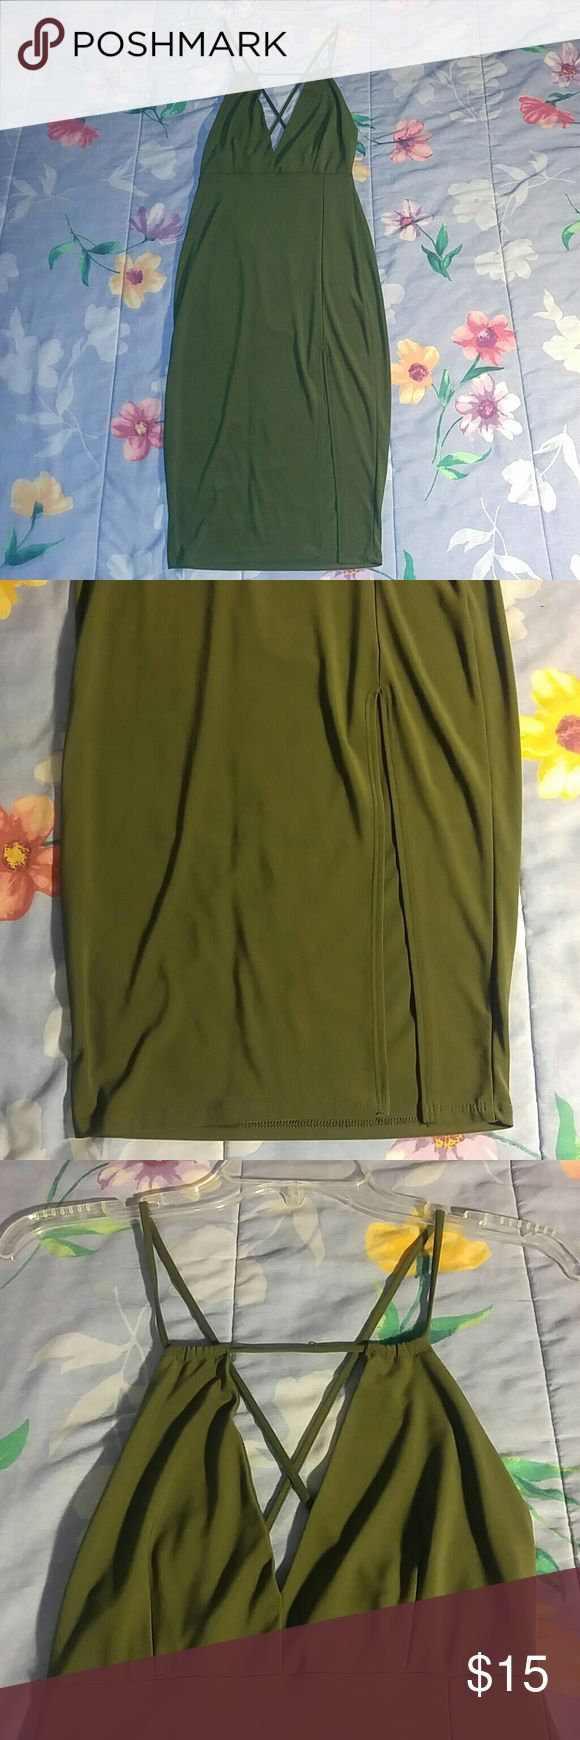 NWOT Sexy dark forest green bodycon dress Sexy slit on the left side, v cut on the chest and criss cross on the back  Perfect for going out/clubbing!!  Bought it but never wore it   96% polyester 4% spandex Forever 21 Dresses